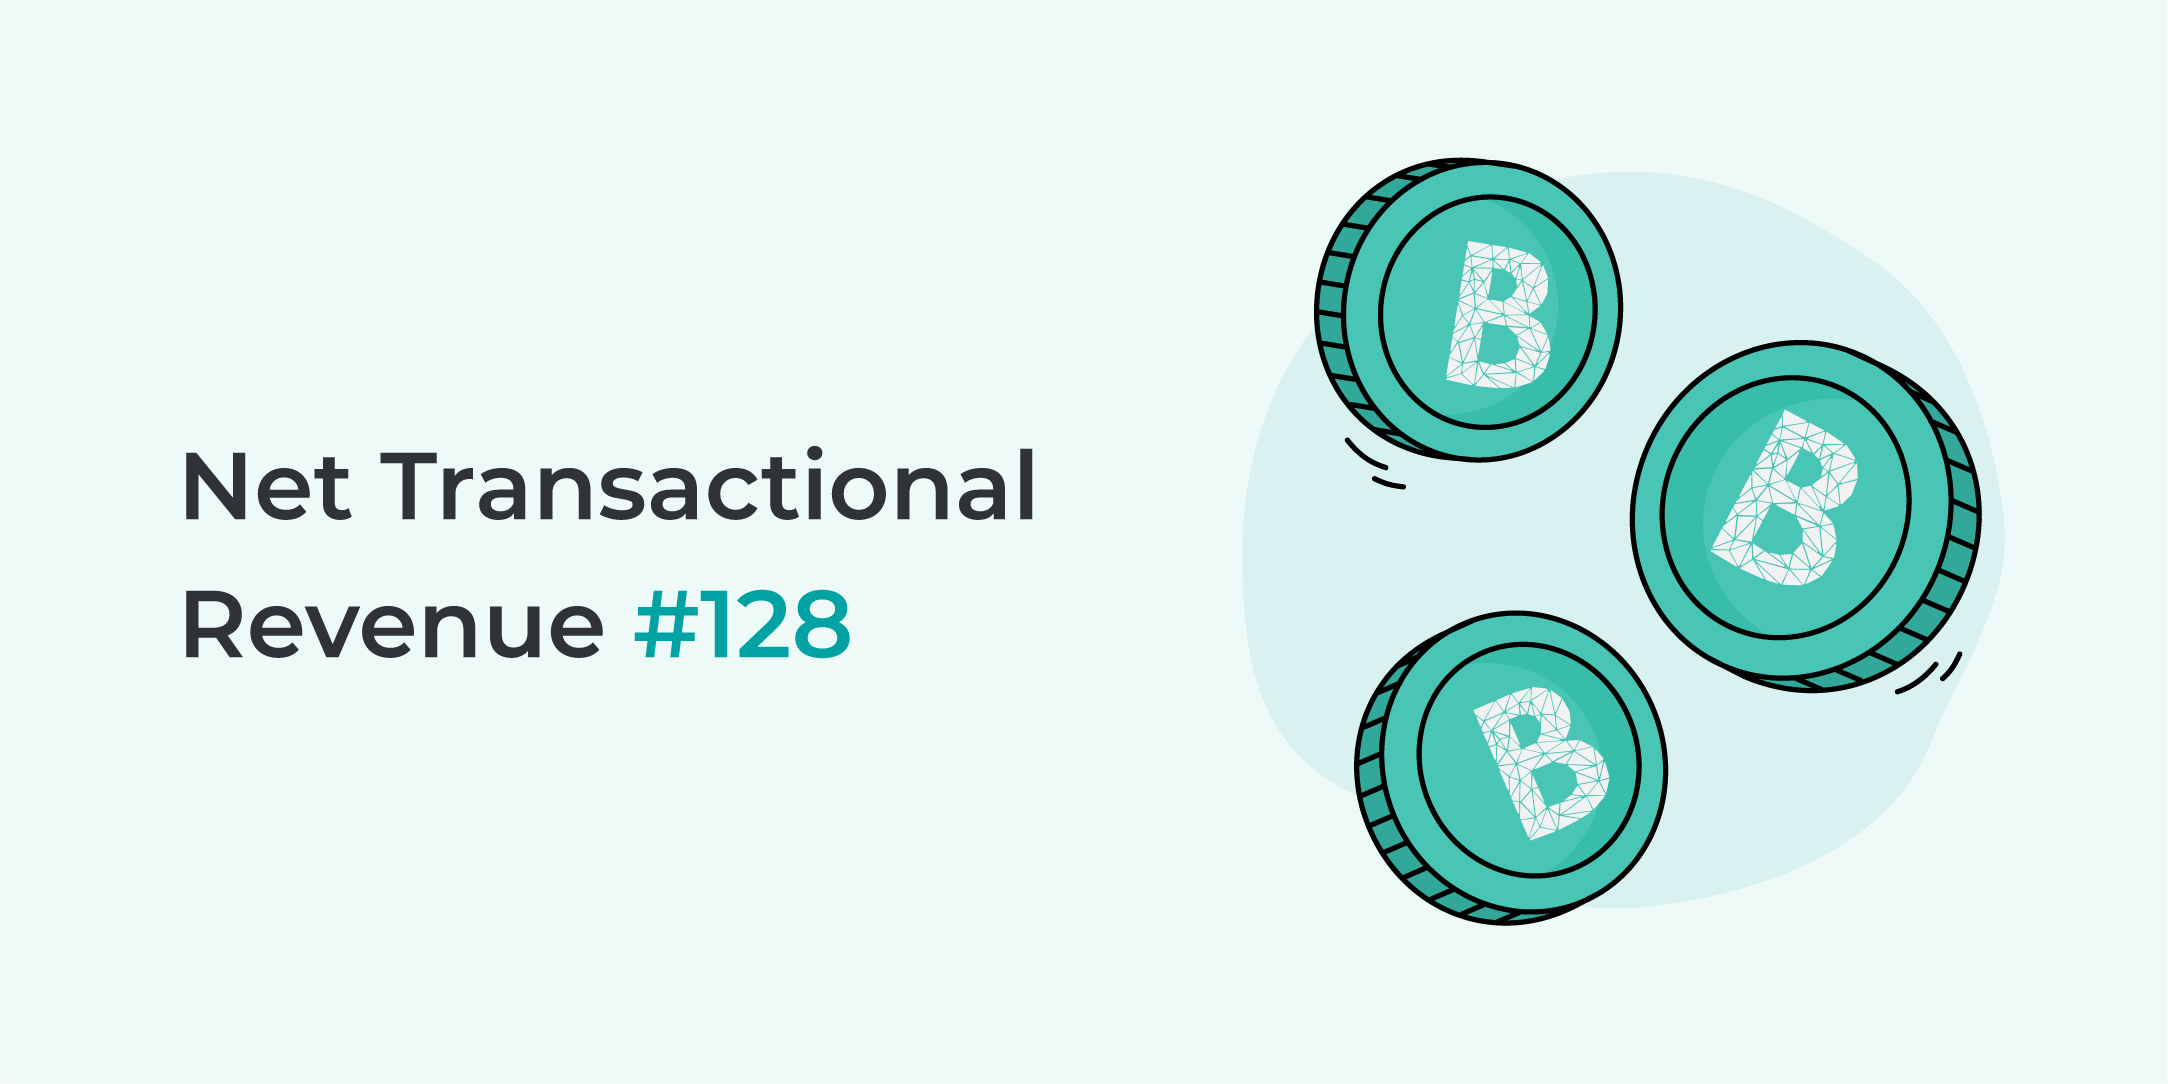 Bankera paid the 128th net transactional revenue